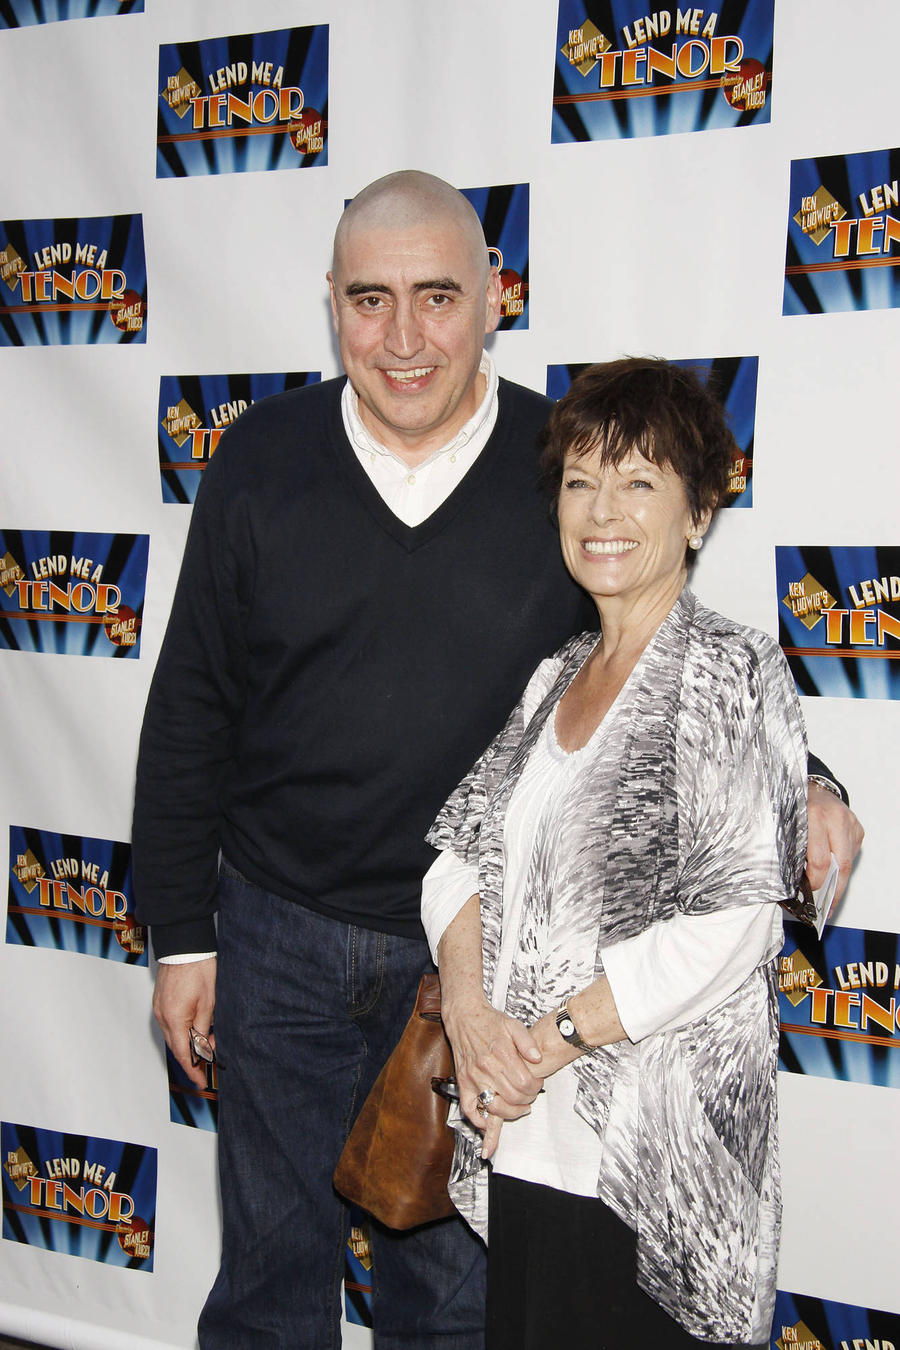 Alfred Molina's Wife Jill Gascoine 'In Advanced Stages Of Alzheimer's'